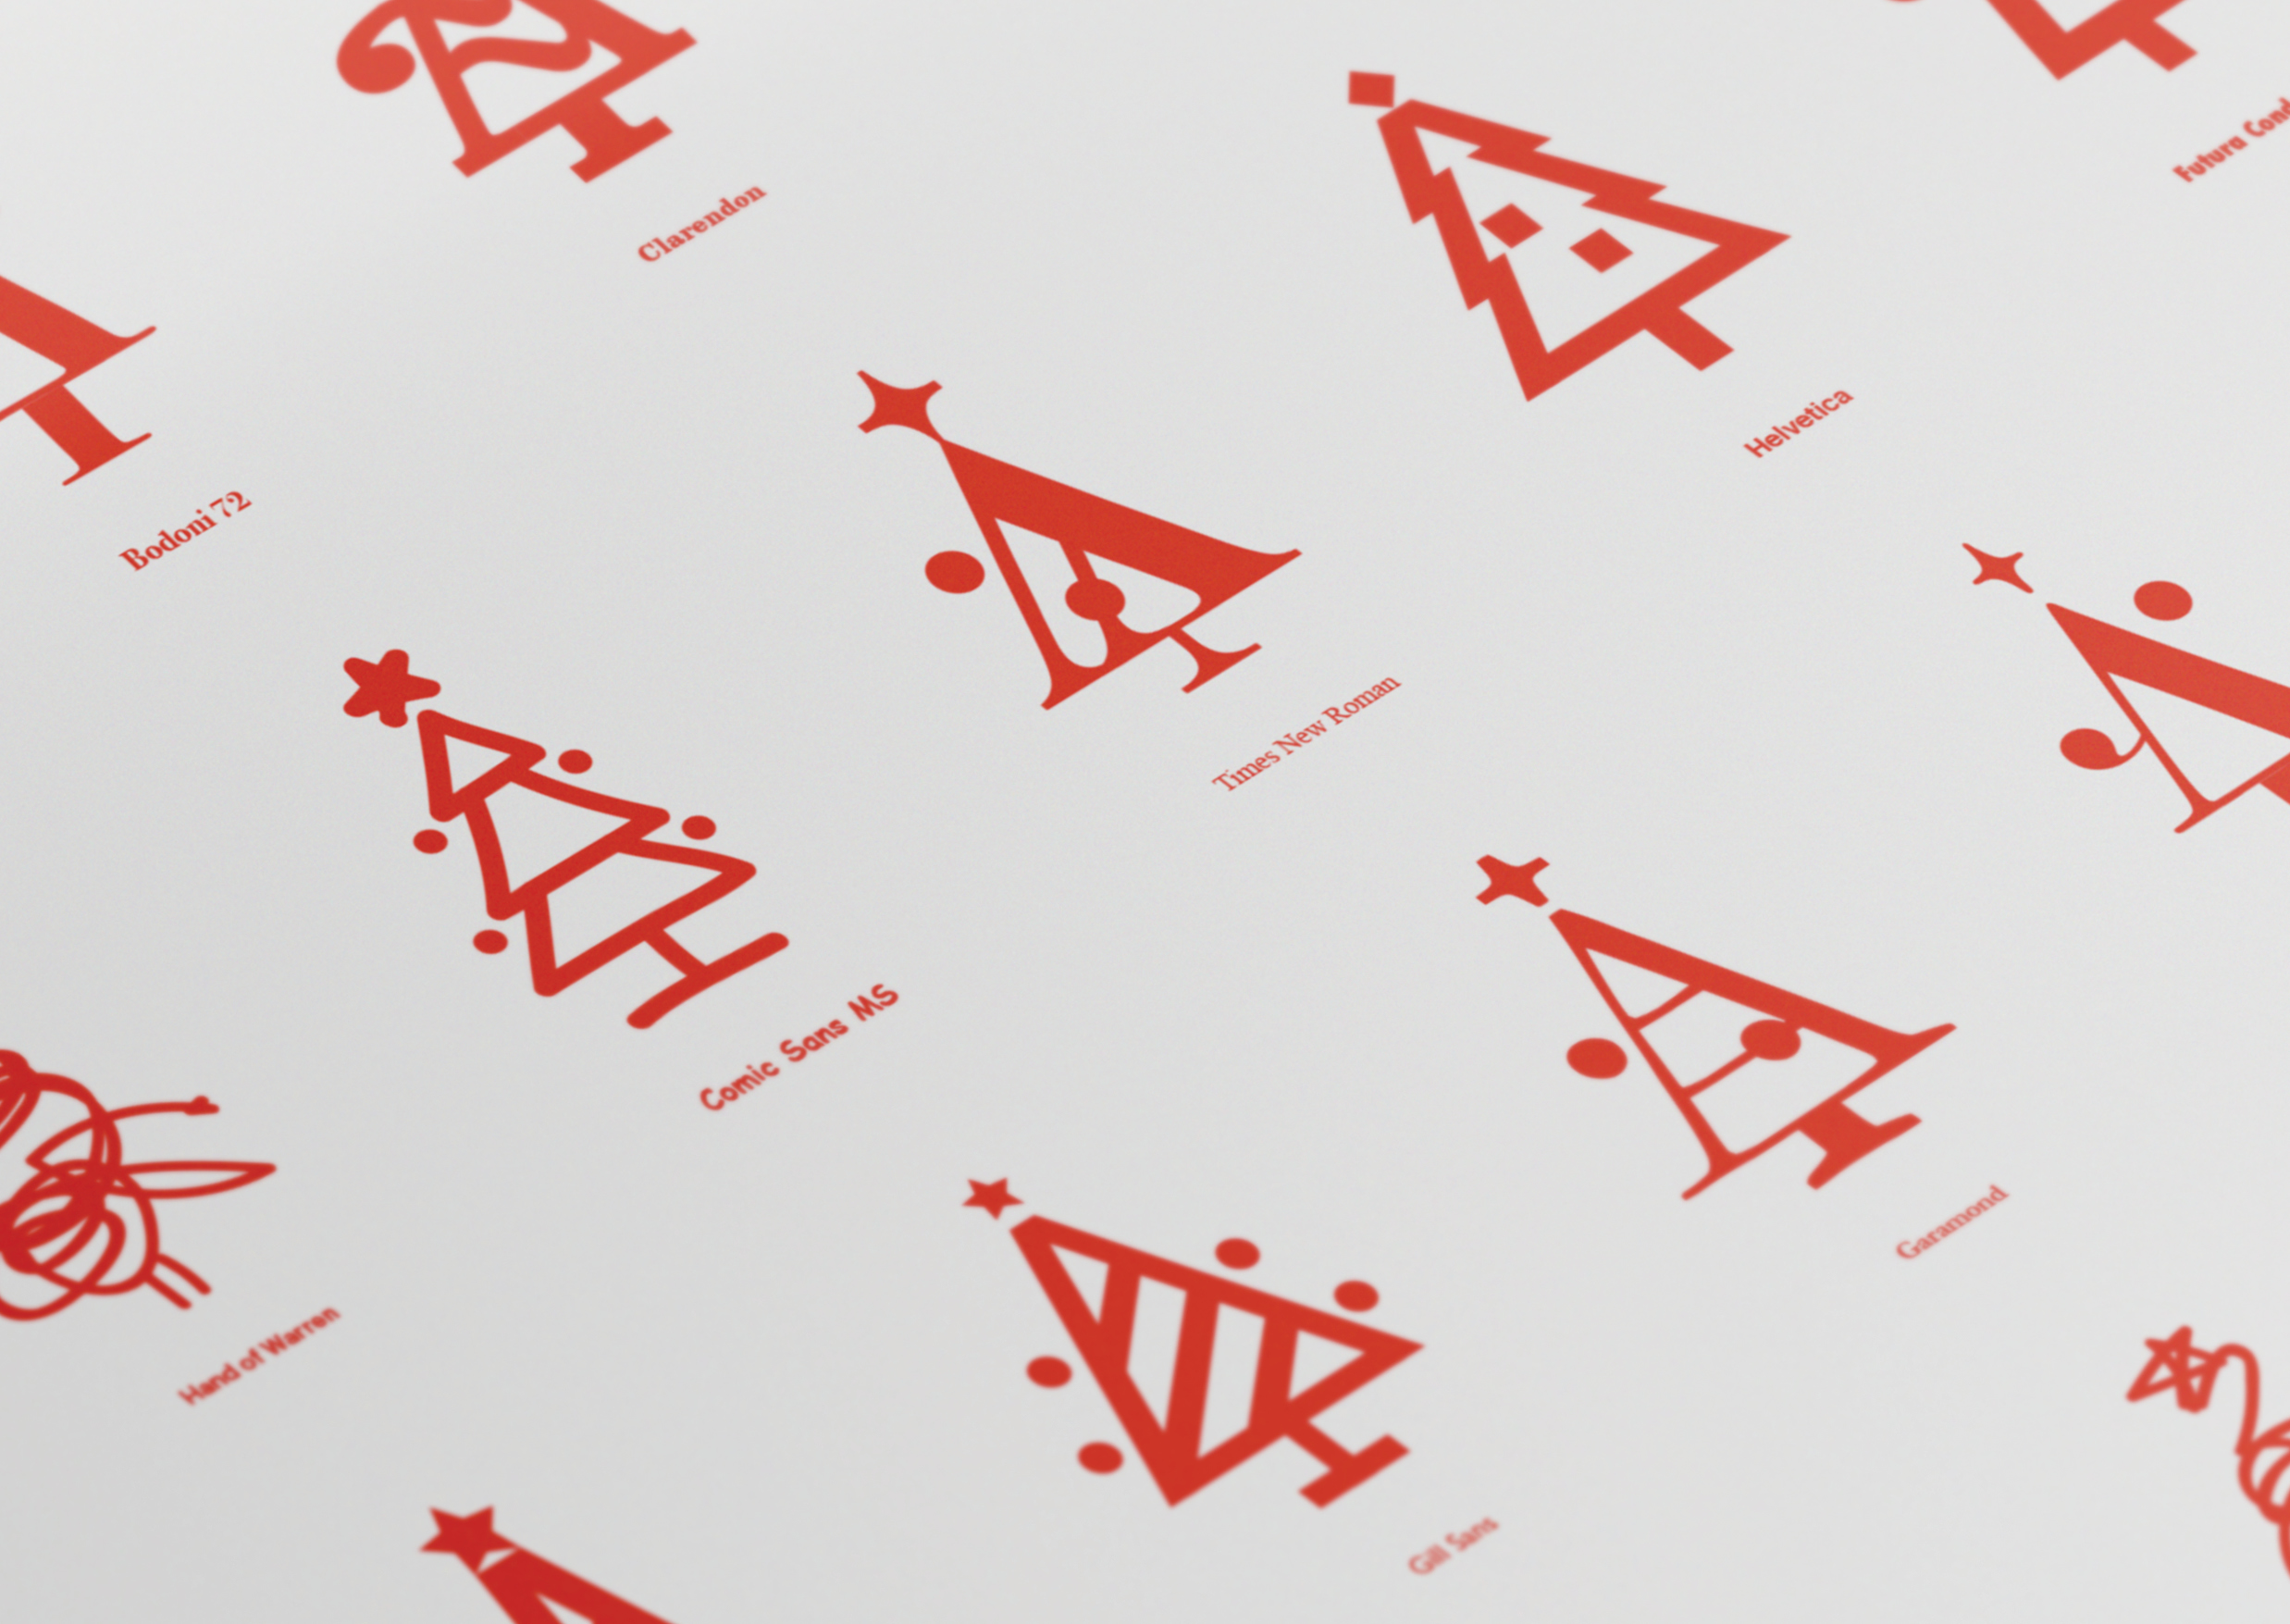 Glyph wrapping paper close up